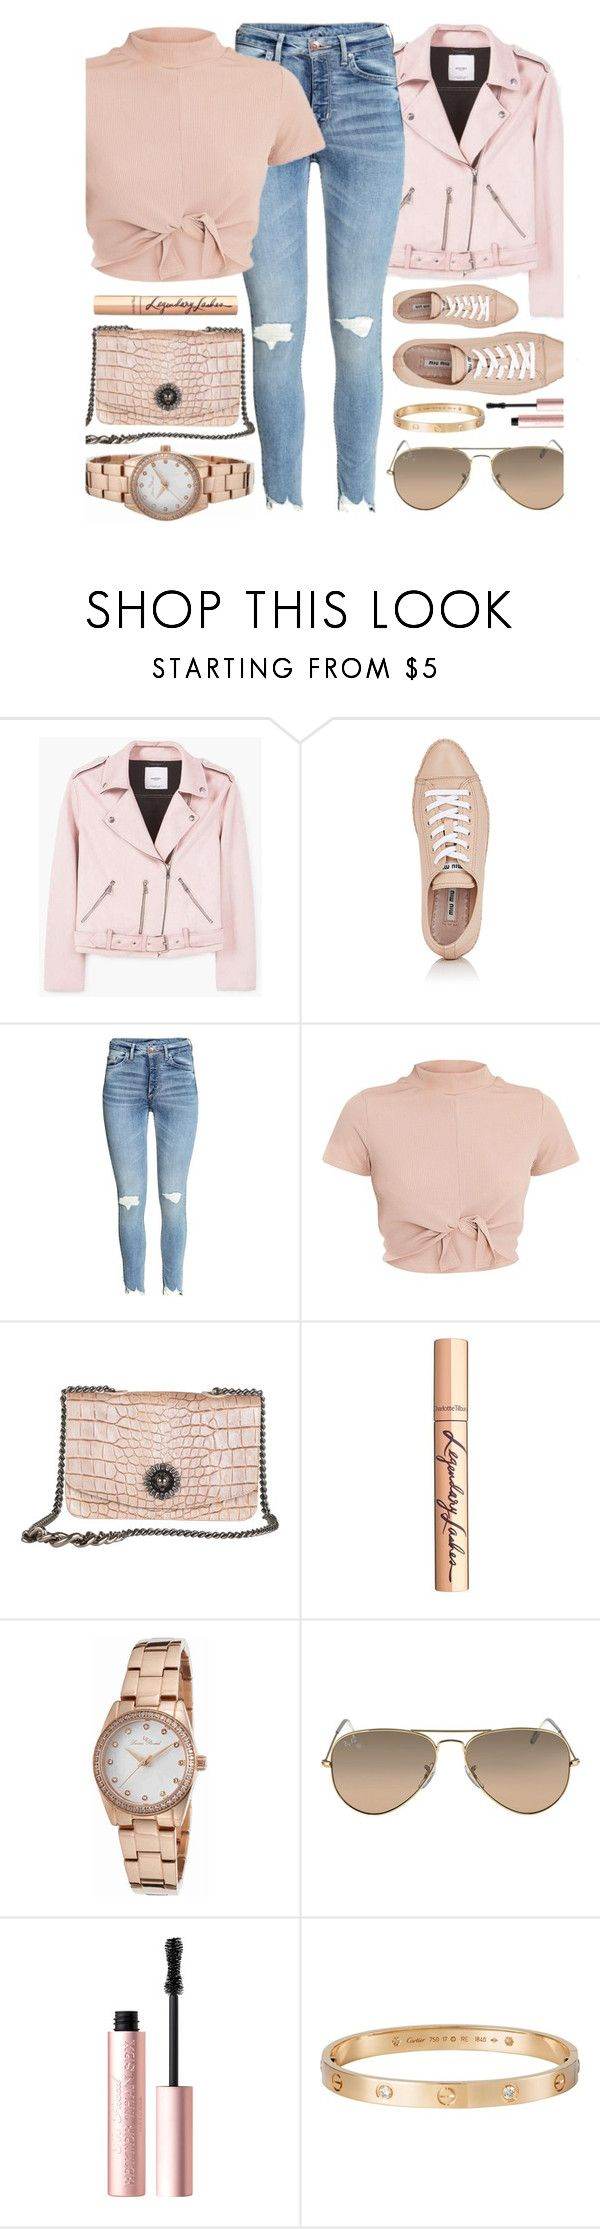 """Dream Maker"" by monmondefou ❤ liked on Polyvore featuring MANGO, Miu Miu, Charlotte Tilbury, Lucien Piccard, Too Faced Cosmetics, Cartier and Pink"